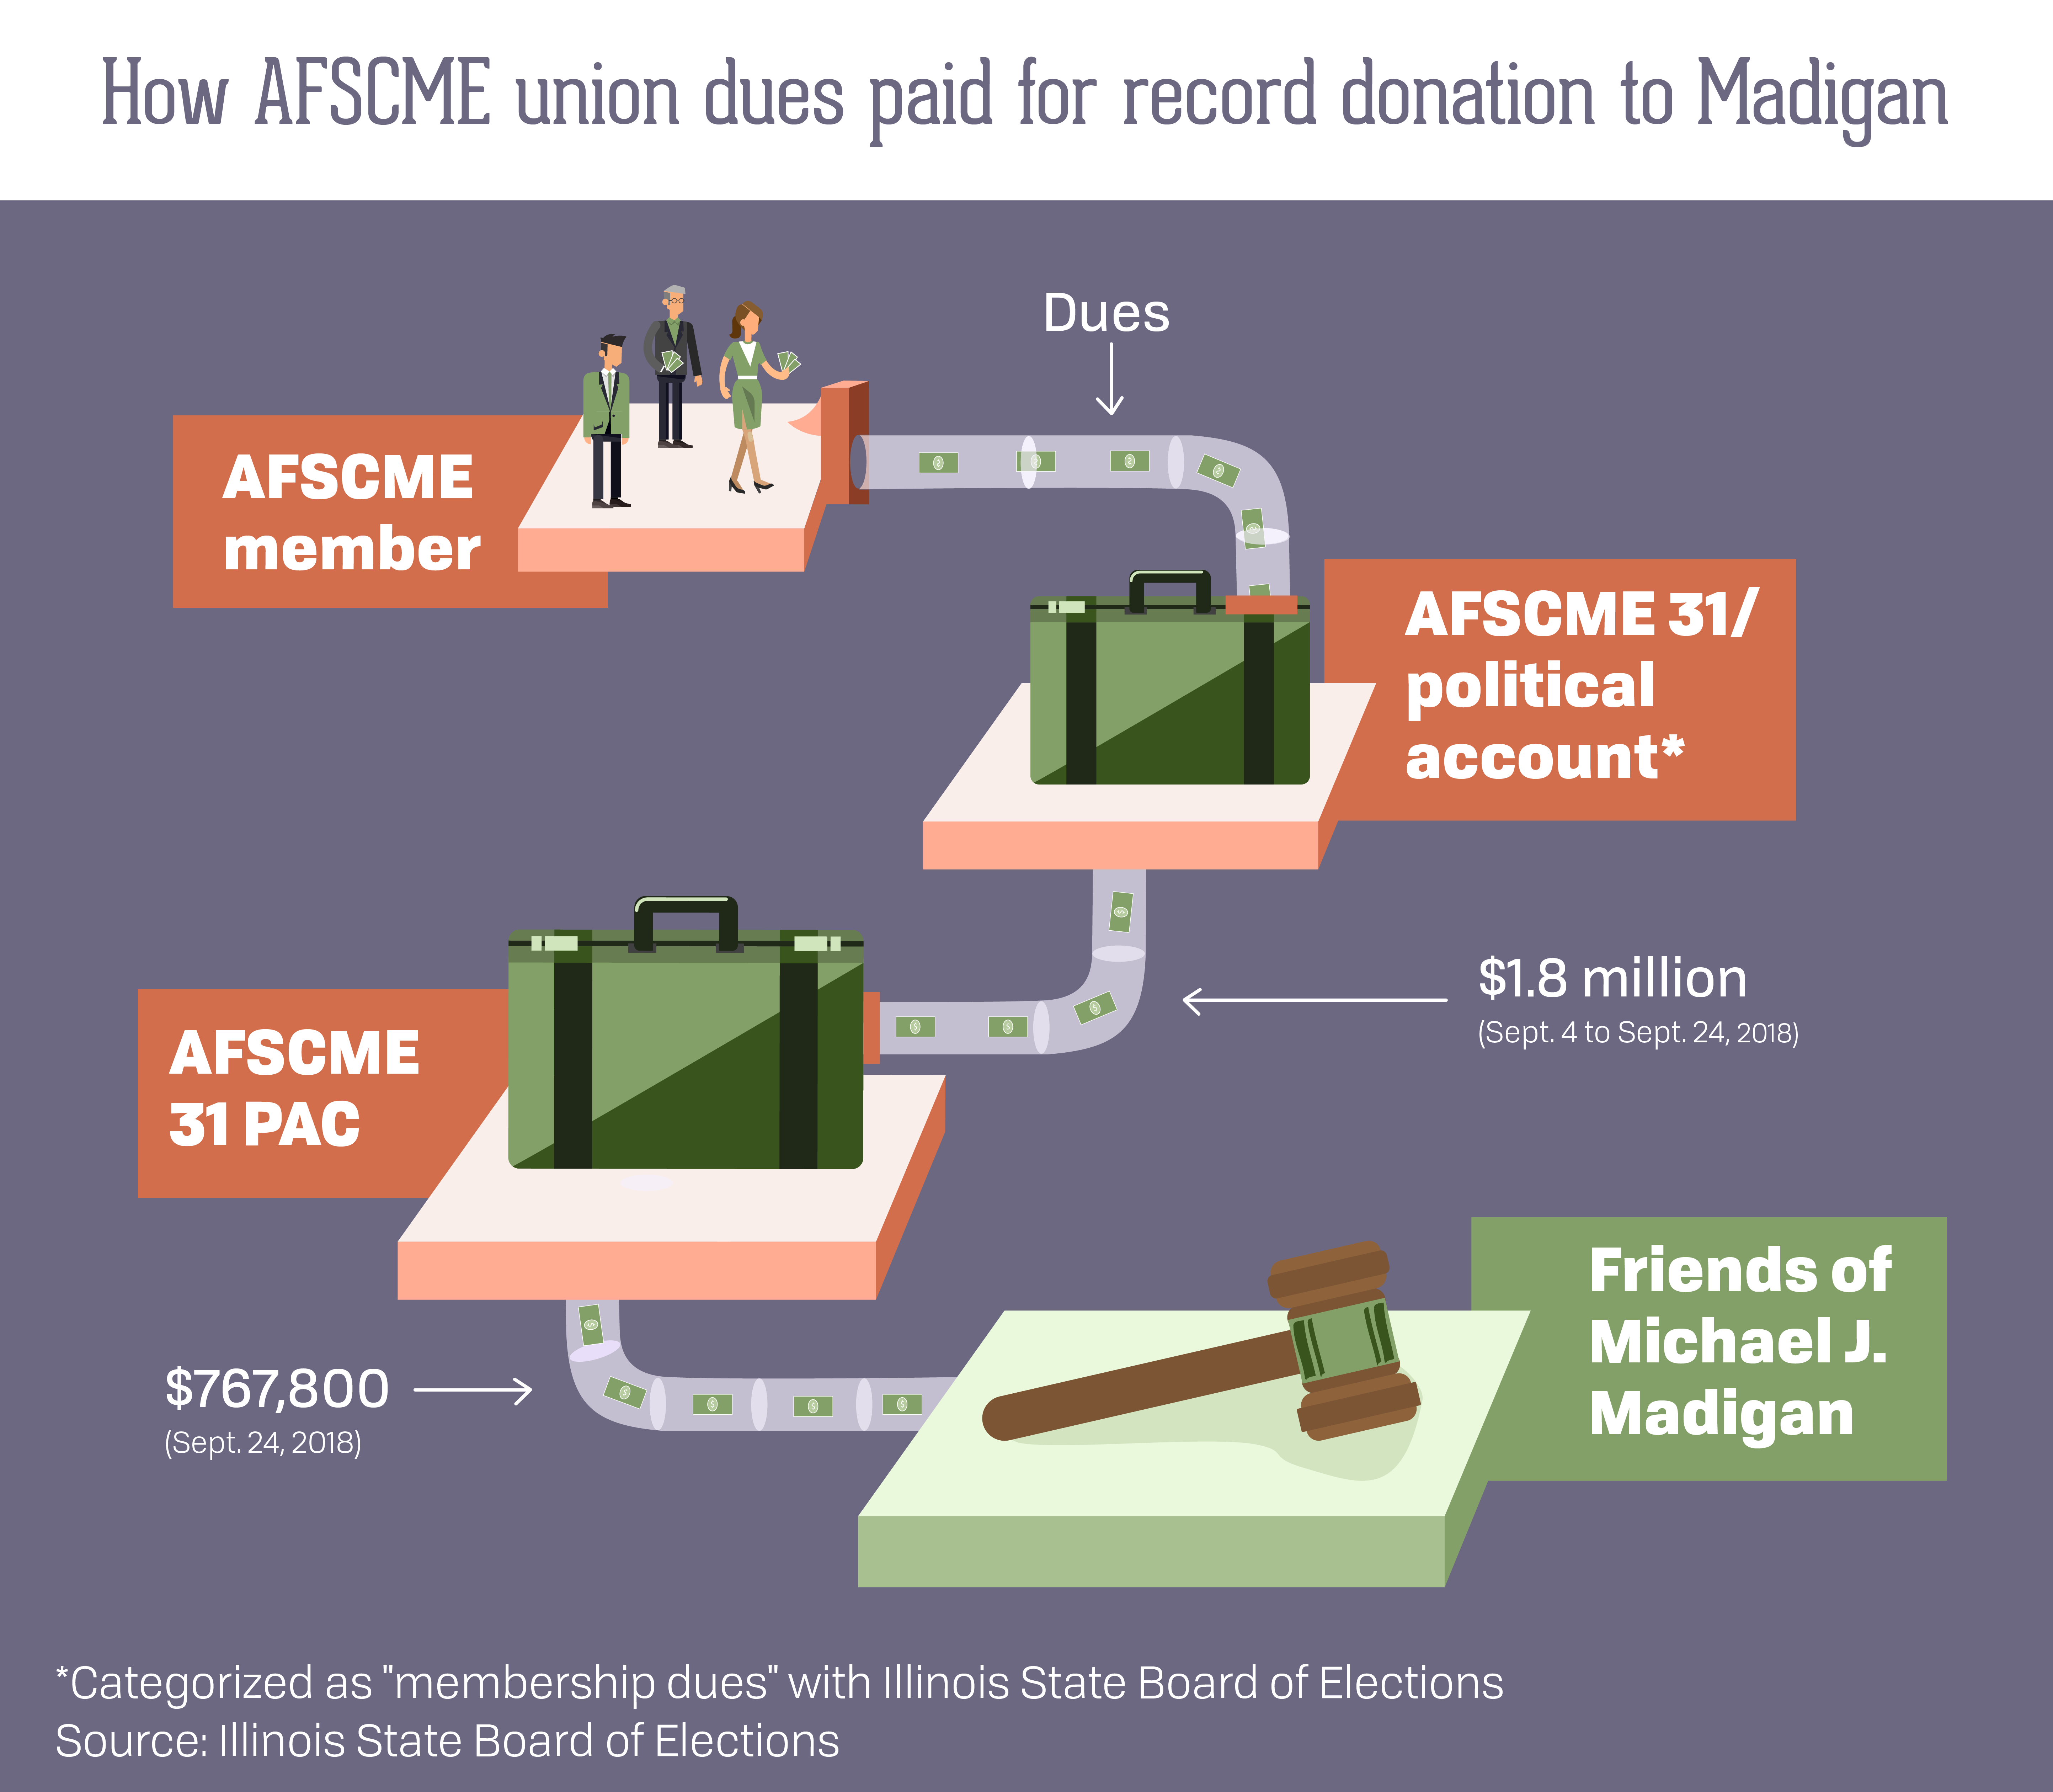 How AFSCME union dues paid for record donation to Madigan